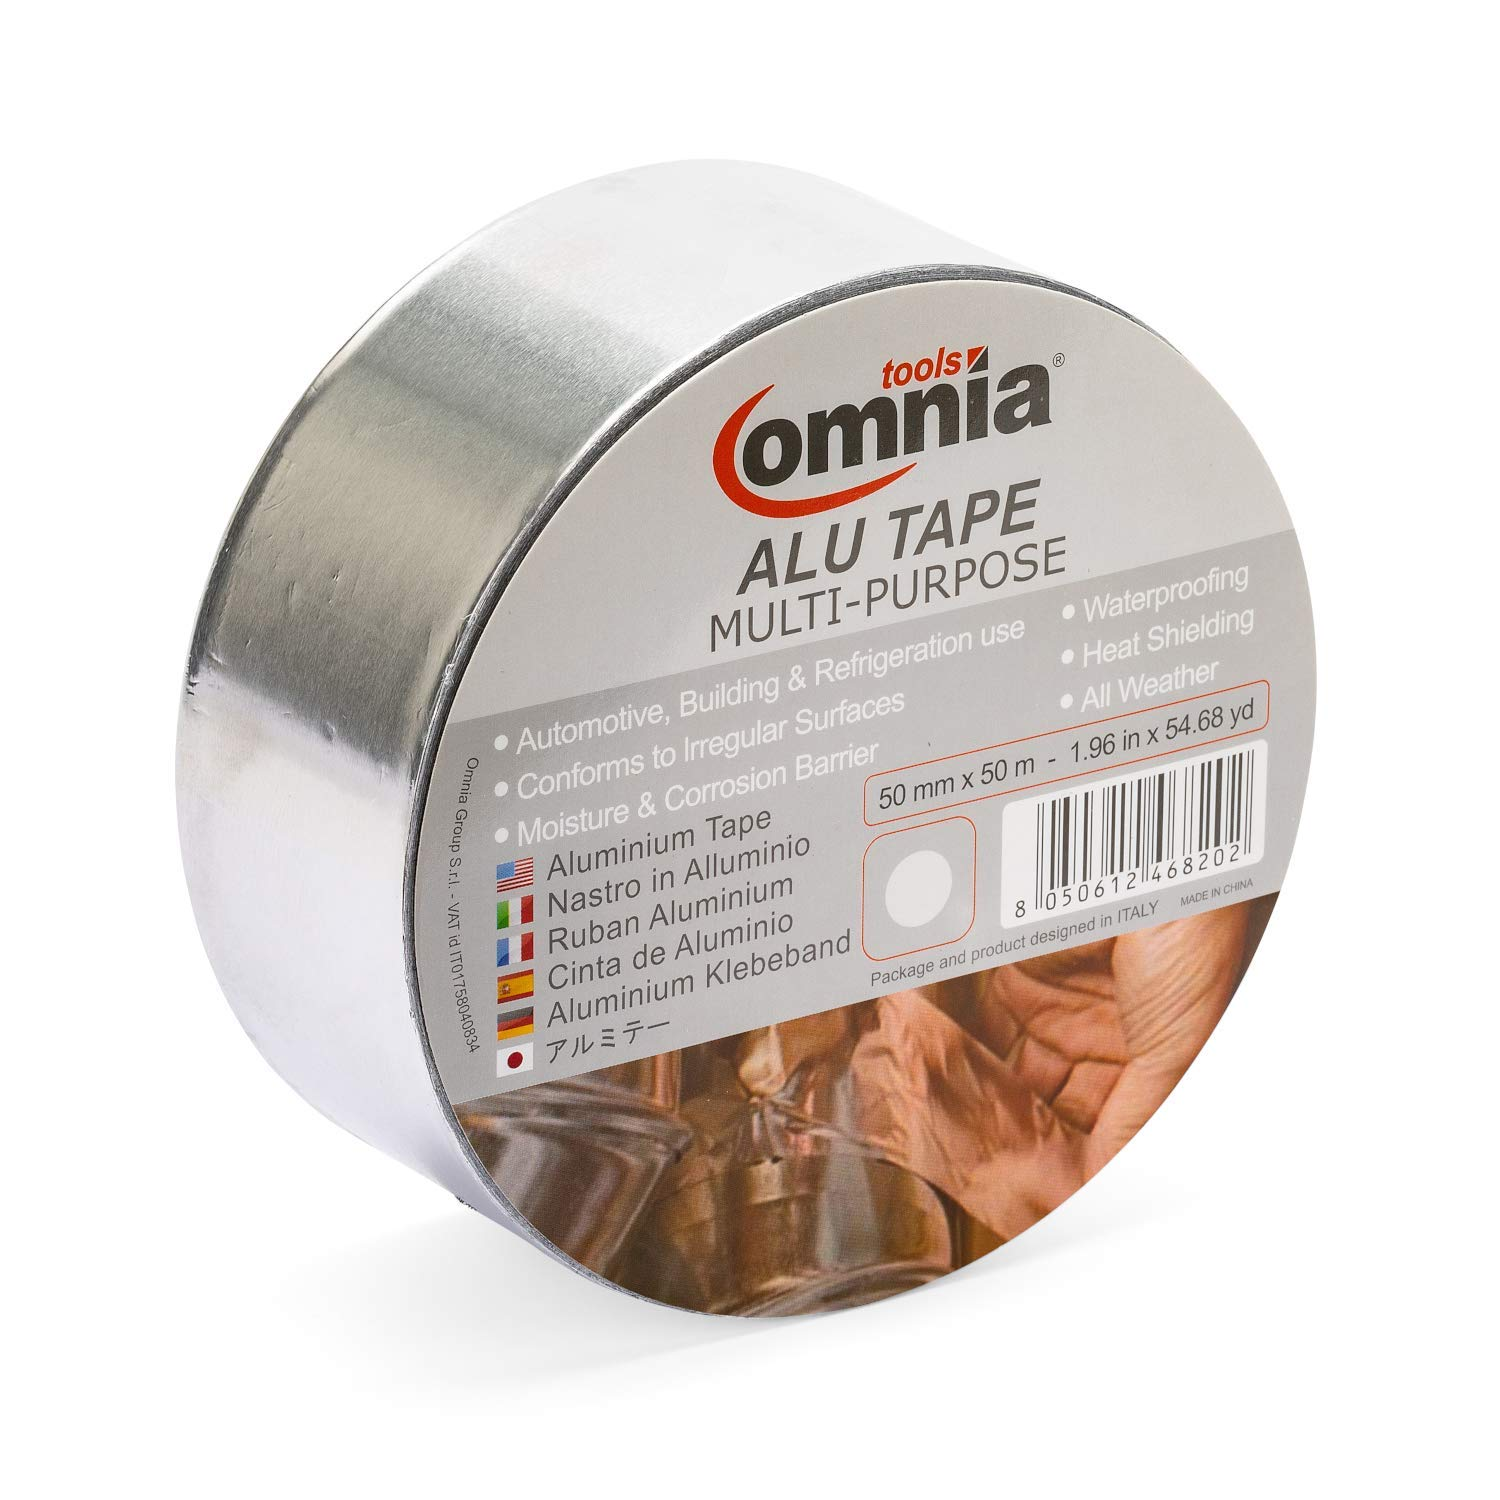 OMNIA TOOLS ALU Multipurpose Tape | Aluminium Foil Self Adhesive Tape | Conductive Heat Proof Vapour Barrier | Silver 1.6 mil 1.96 in x 54 Yd T666801011